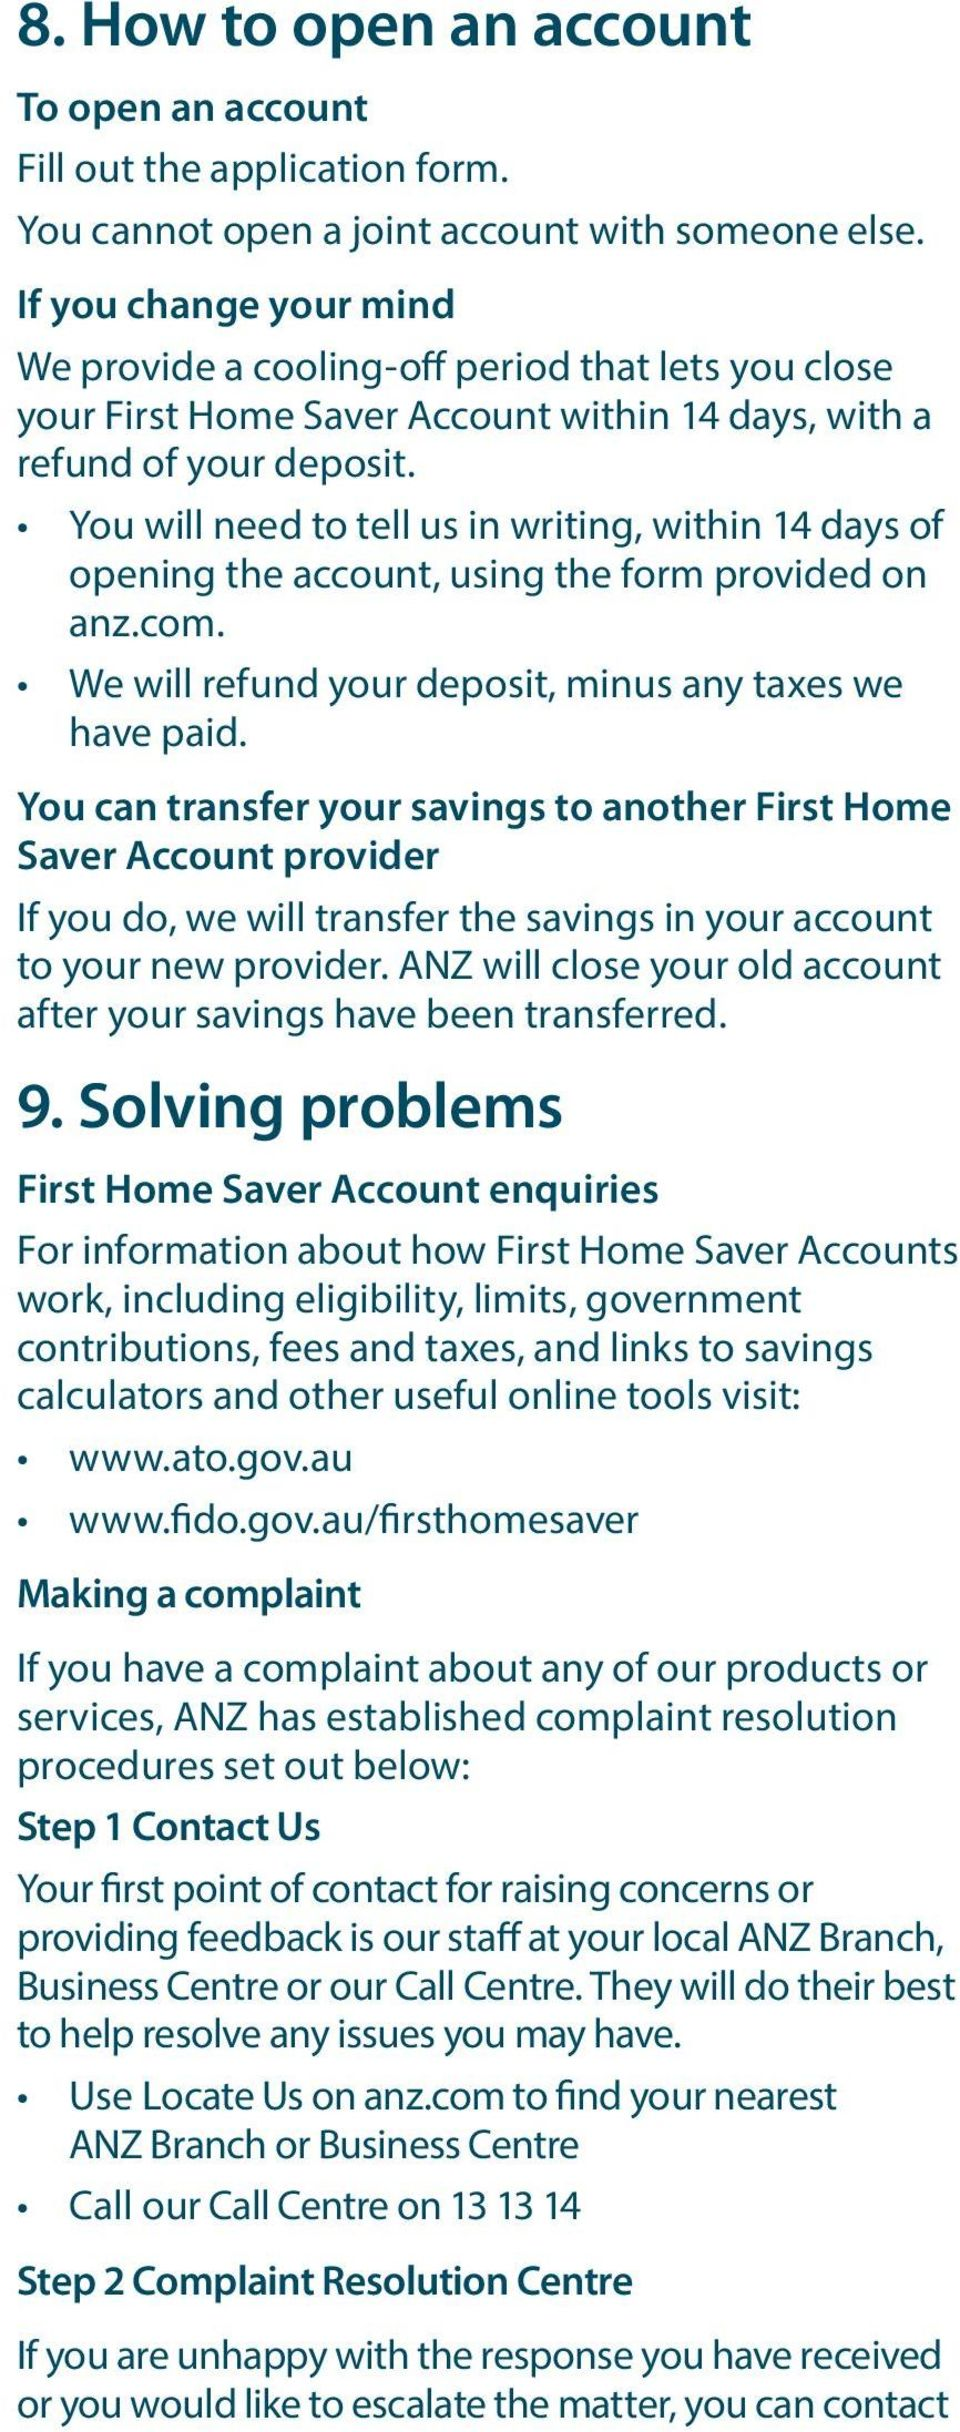 You will need to tell us in writing, within 14 days of opening the account, using the form provided on anz.com. We will refund your deposit, minus any taxes we have paid.